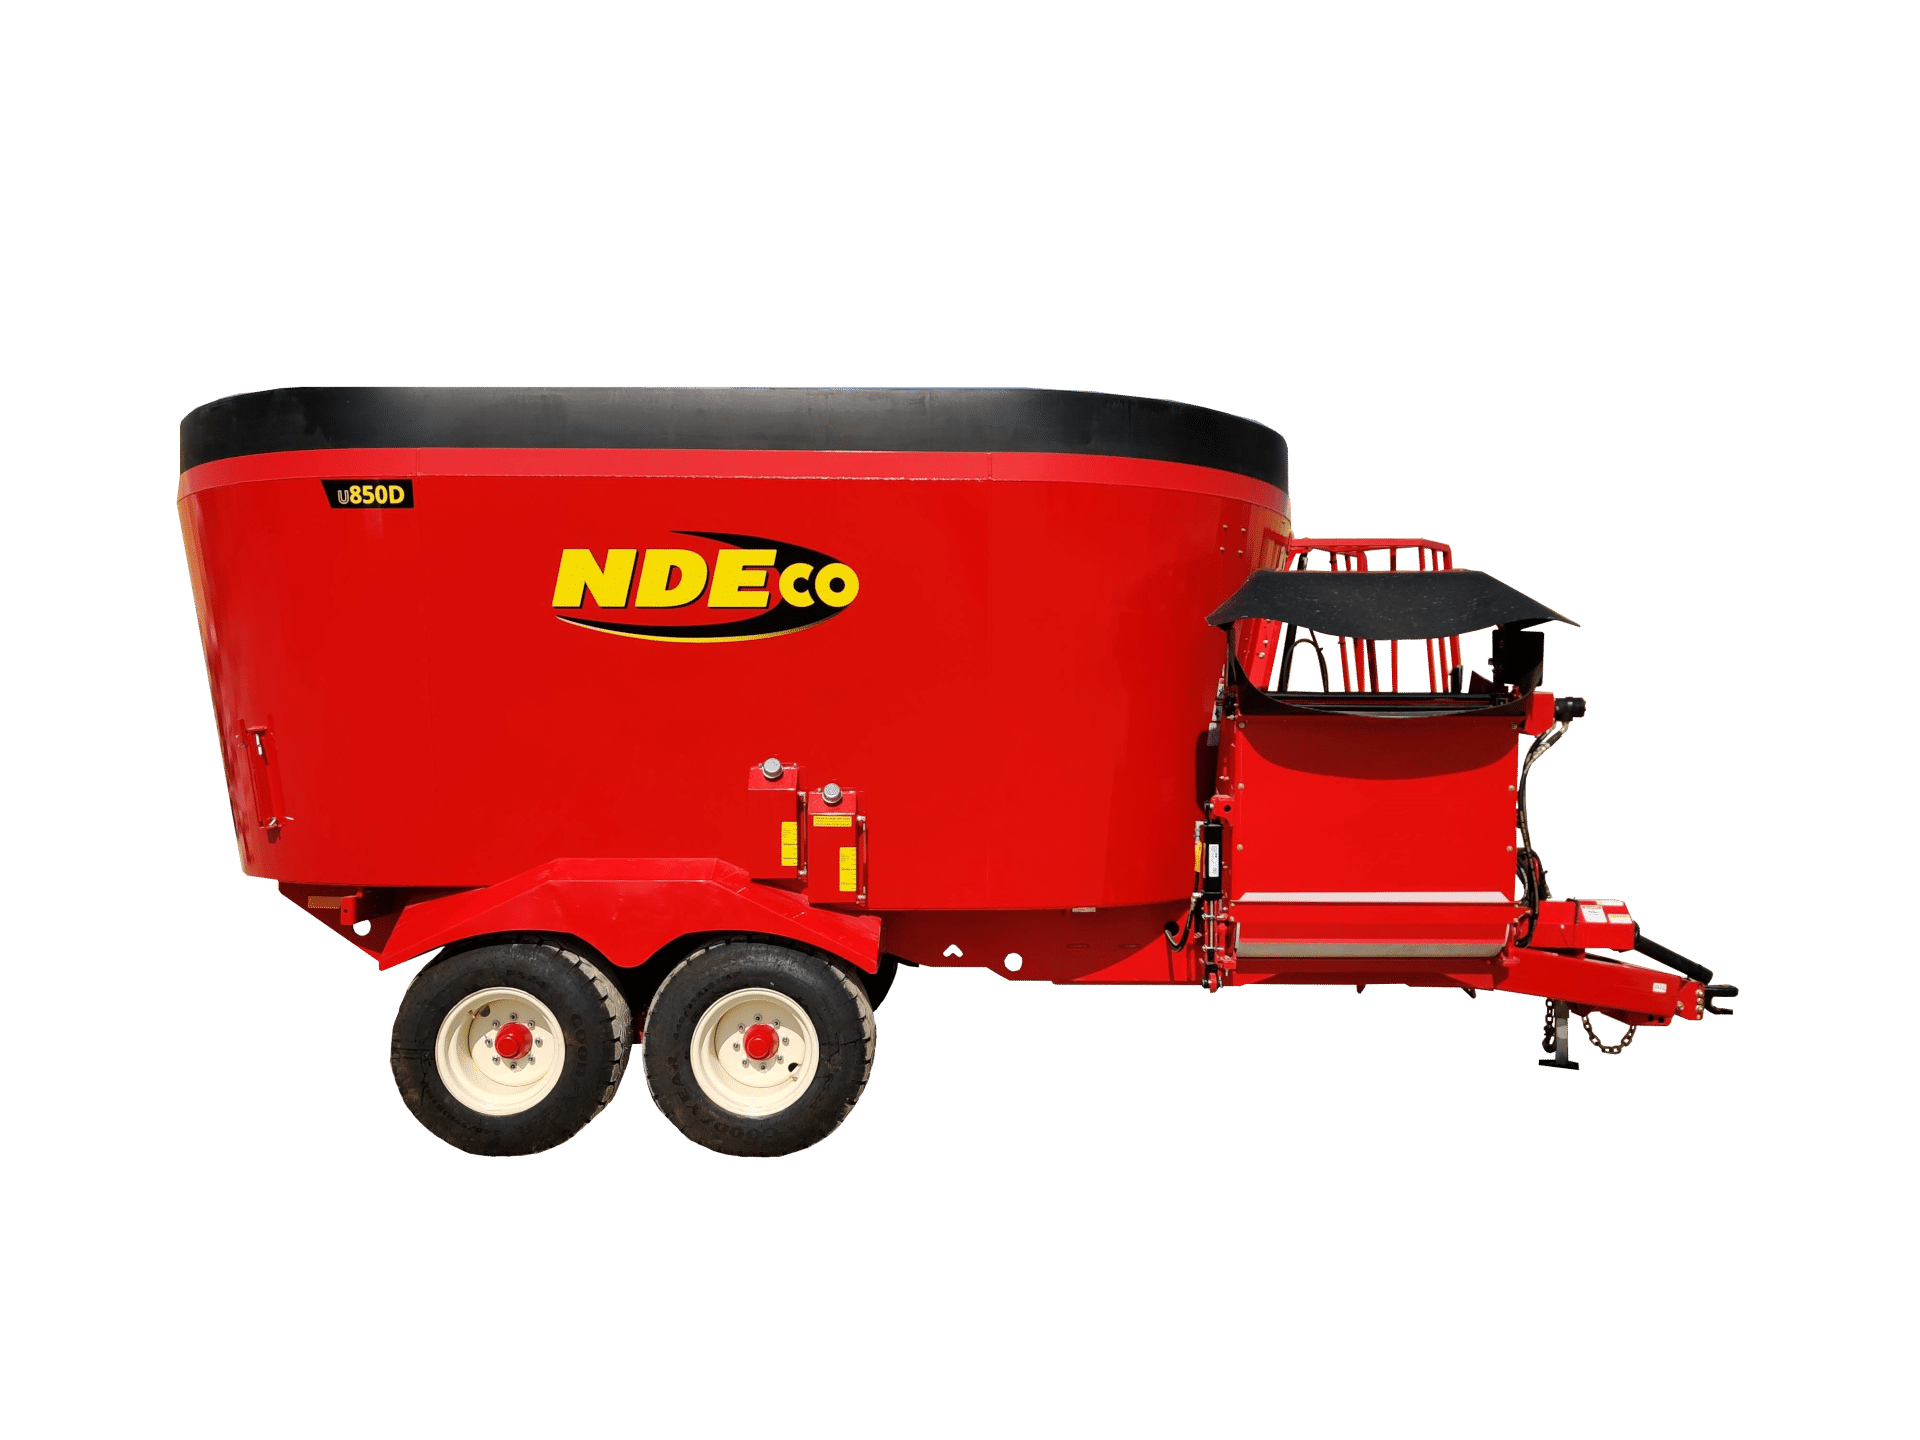 U850D - Dual Auger Feed Mixer w/ Walking Tandem Axles